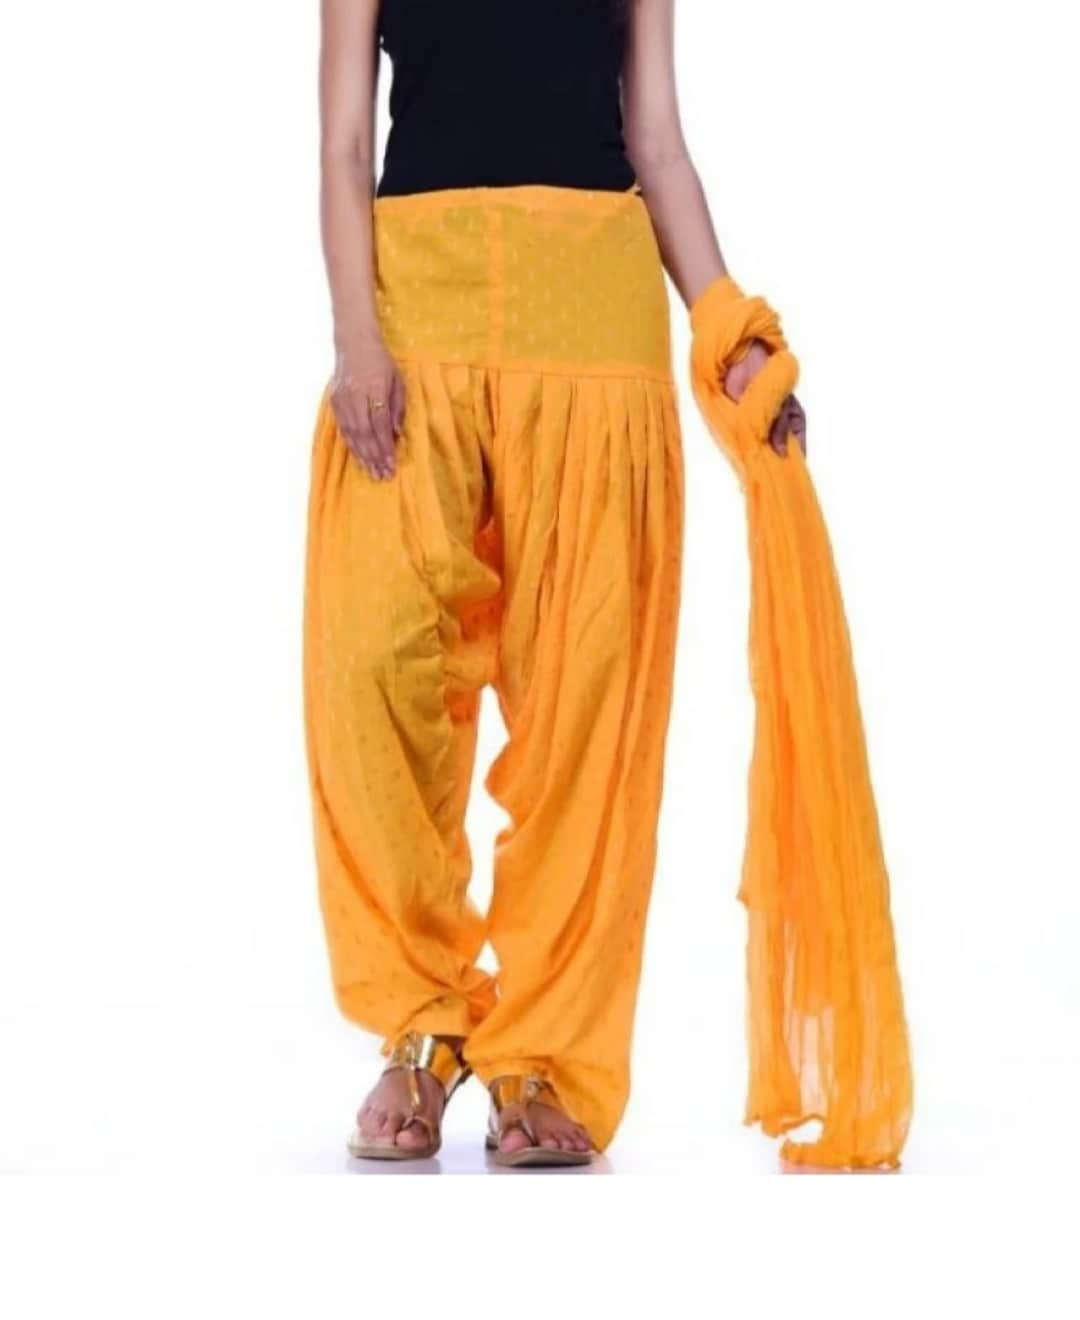 Samridhi Collections Combo Of Women's Cotton Patiala And Dupptta Golden Booti Work (Yellow)